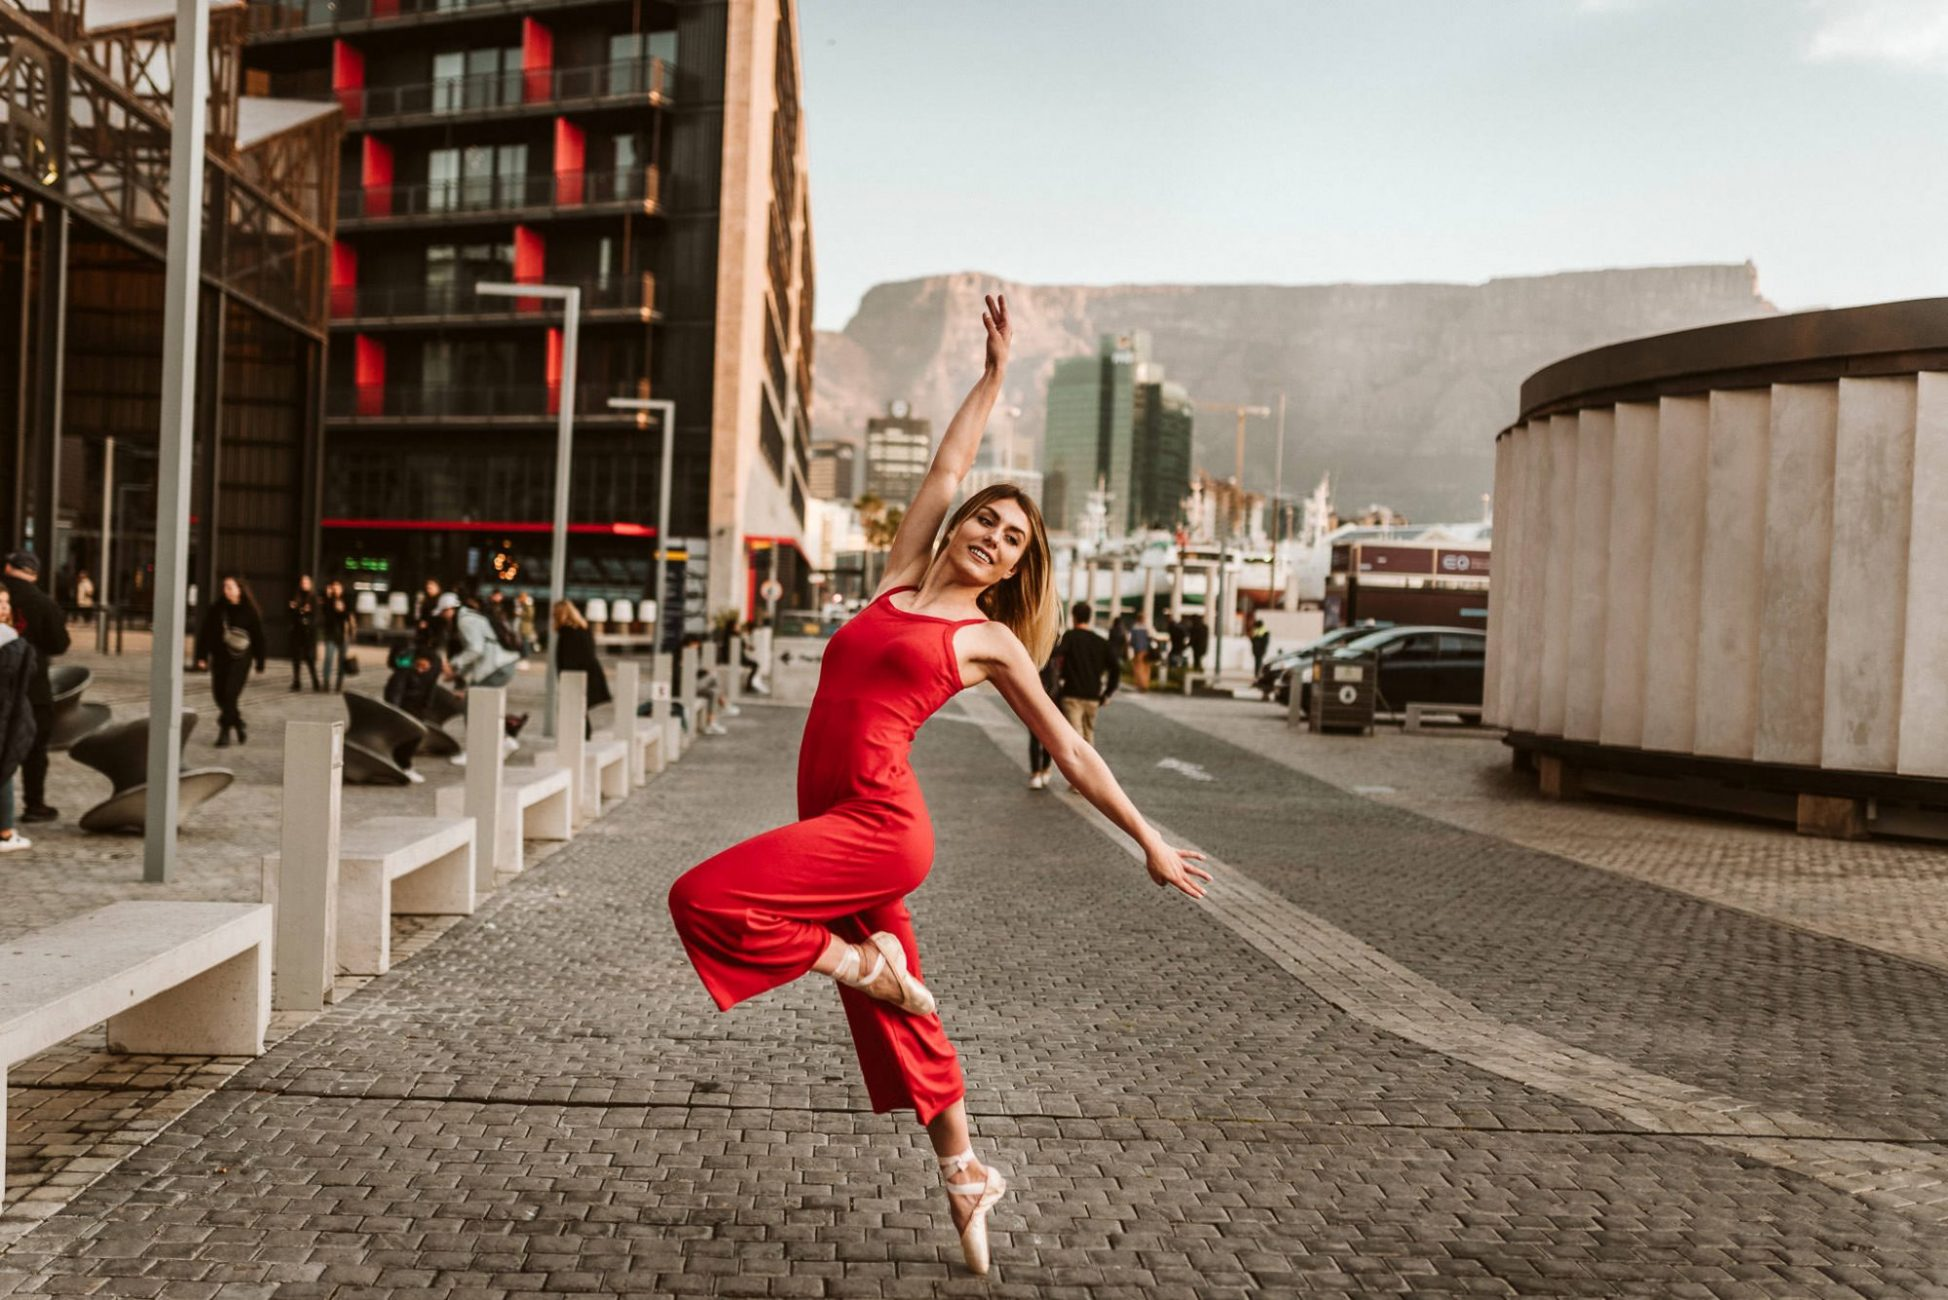 ballerina-cape-town-photography-dancer-red-jumpsuit-blonde-model-cr8tiveduo-capetownphotography-portrait-table-mountain